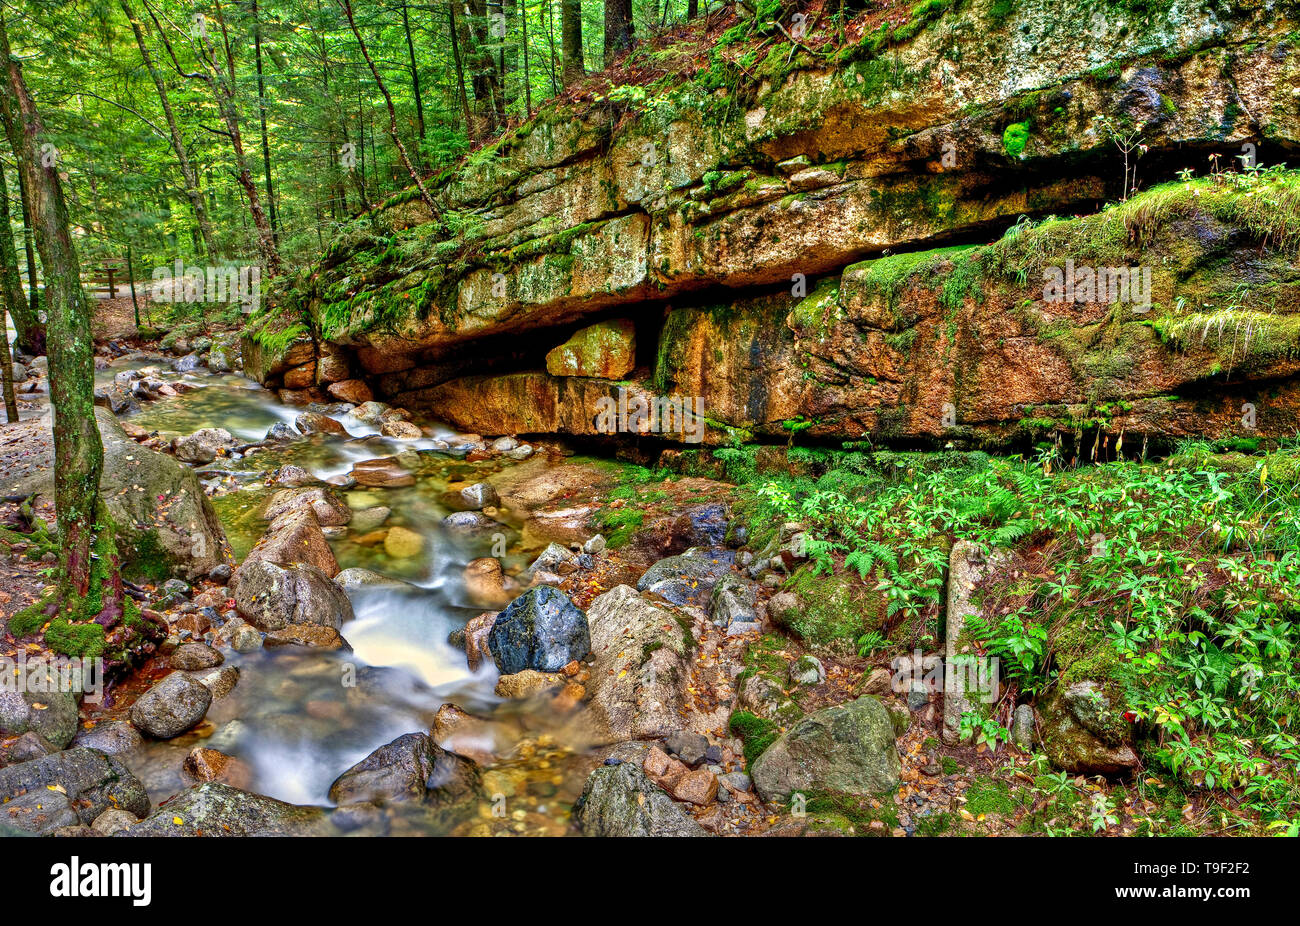 Flume Brook, The Flume, White Mountains, New Hampshire, USA Stock Photo